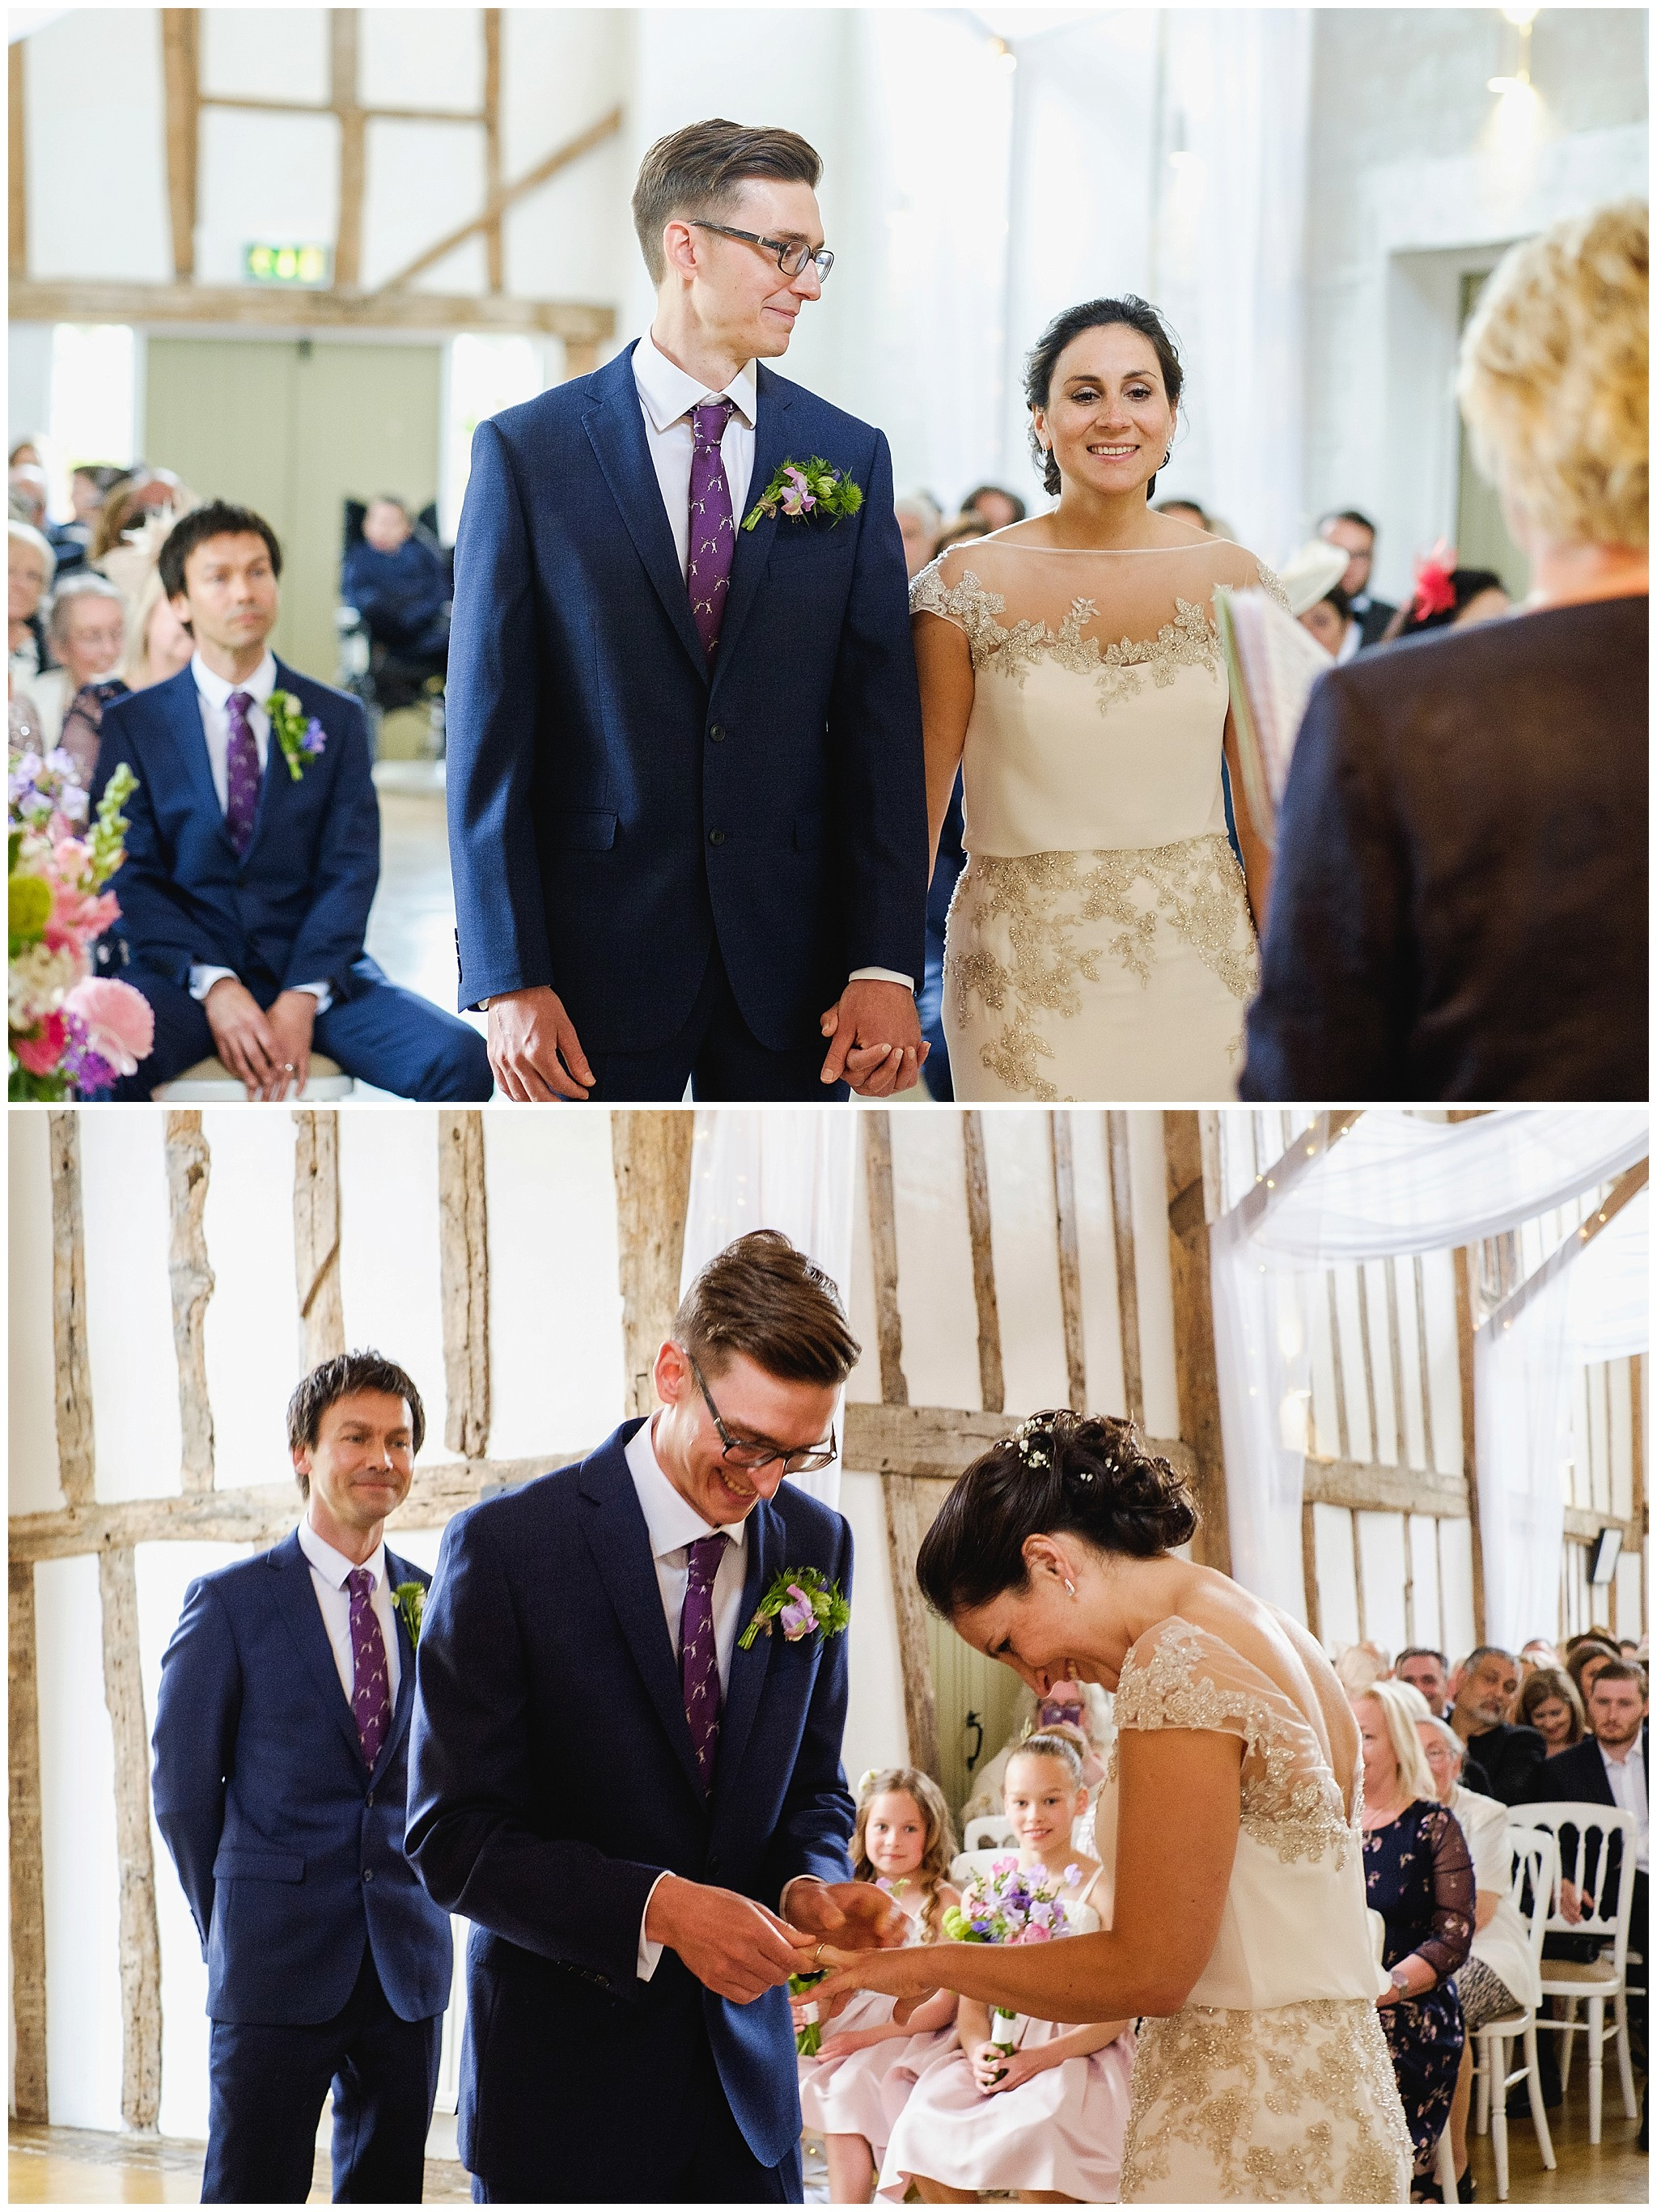 Bride get ring on finger and laughs